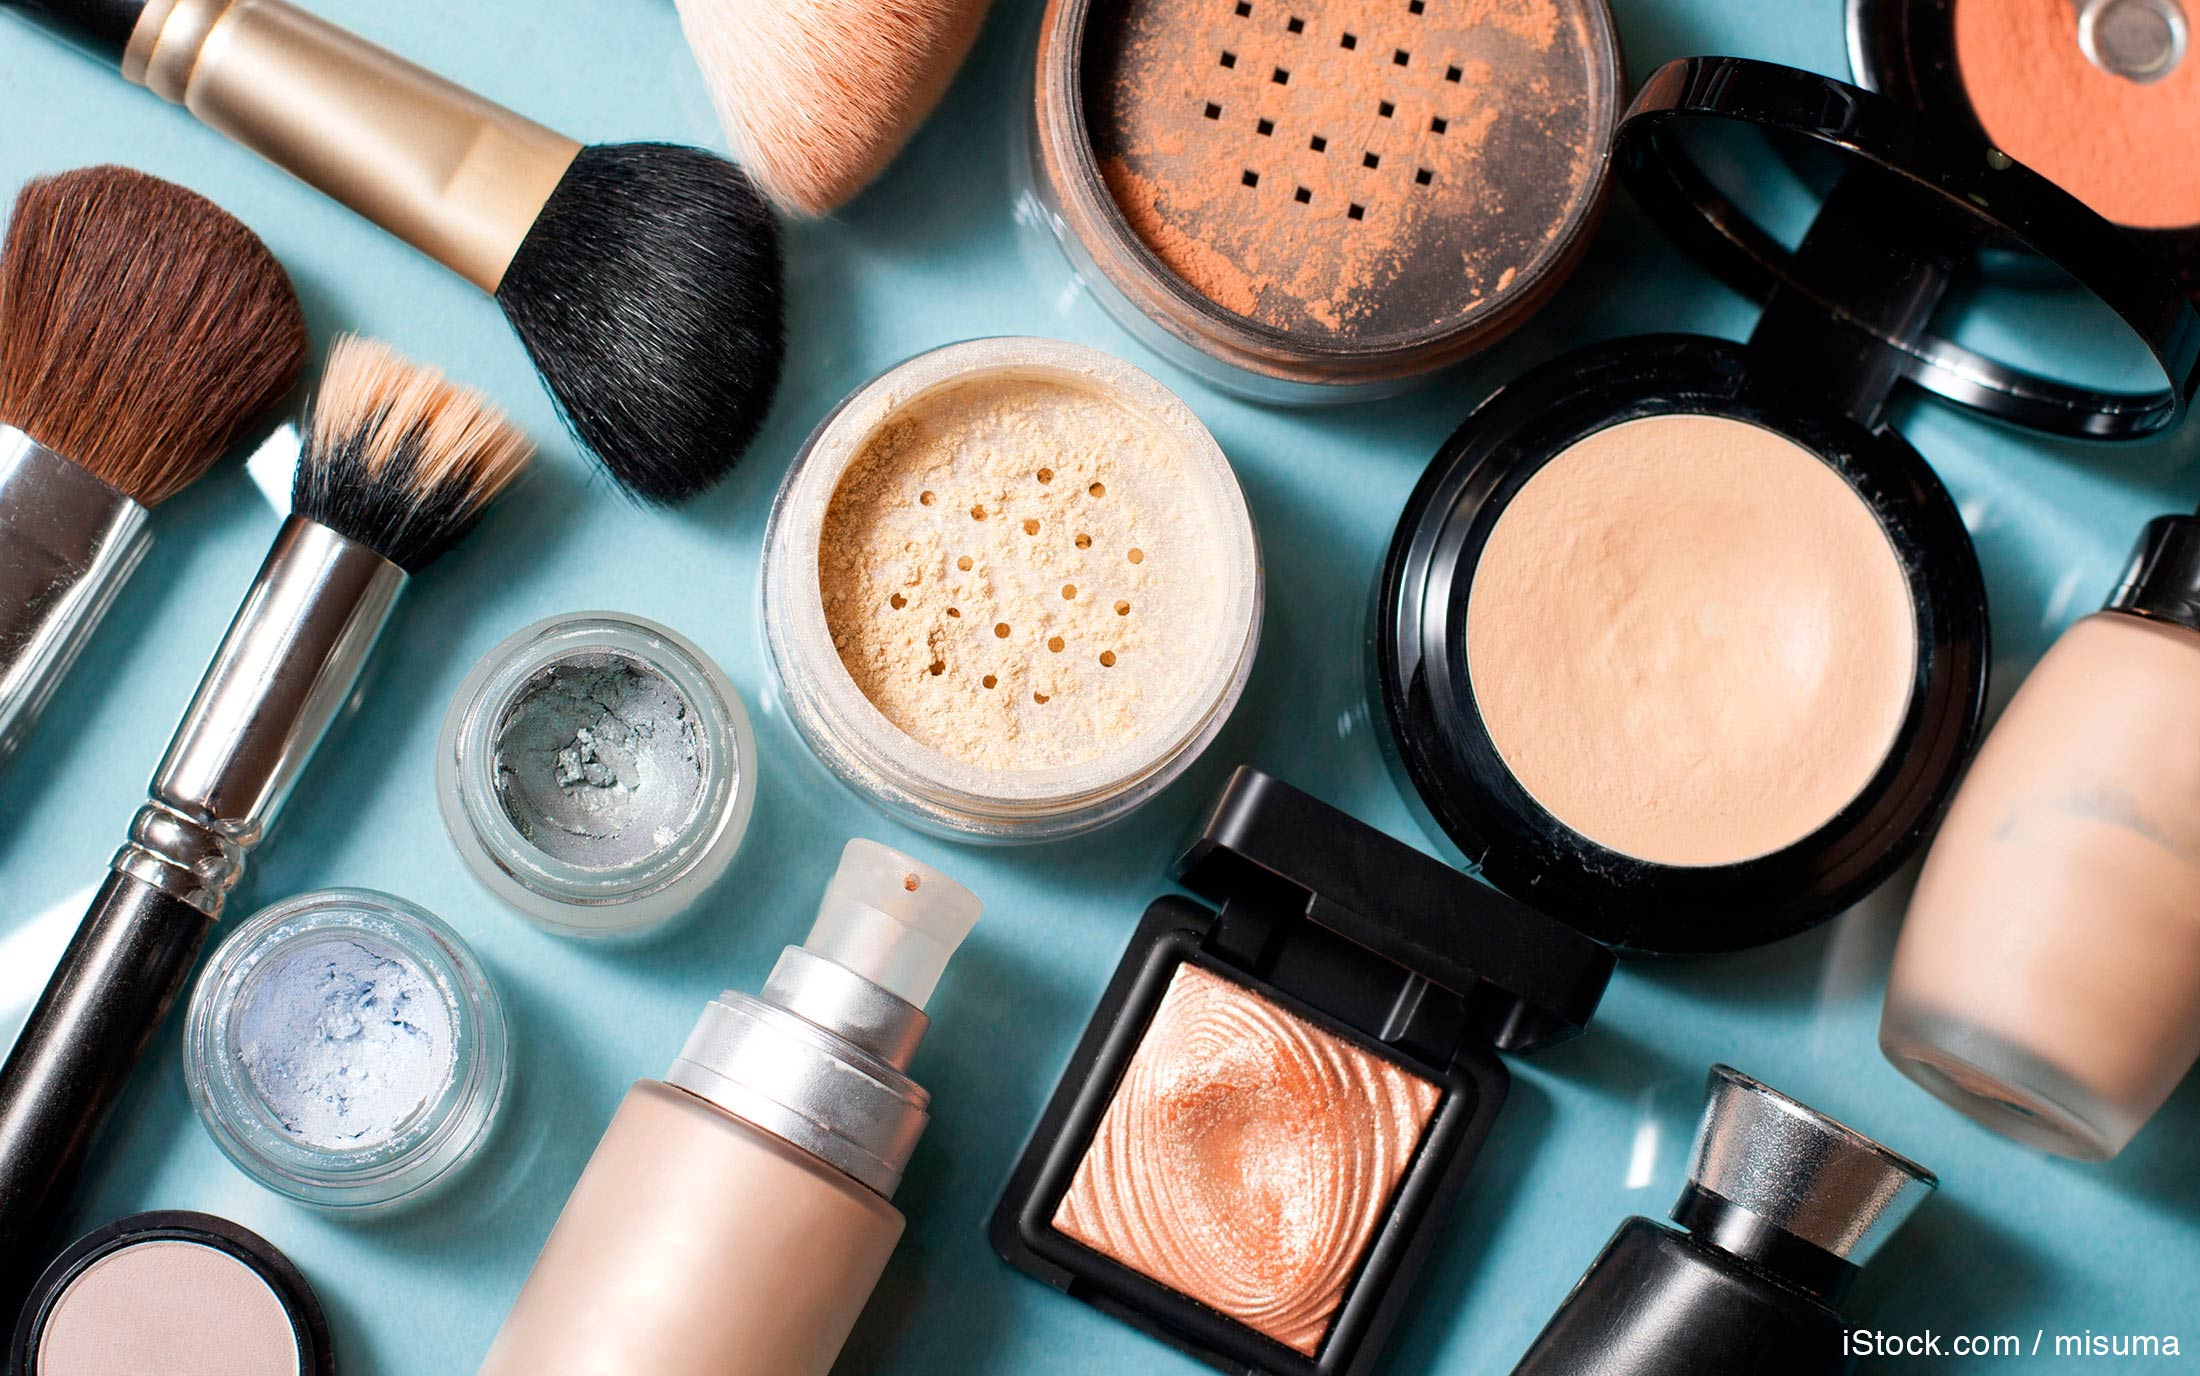 buy multitasking beauty products